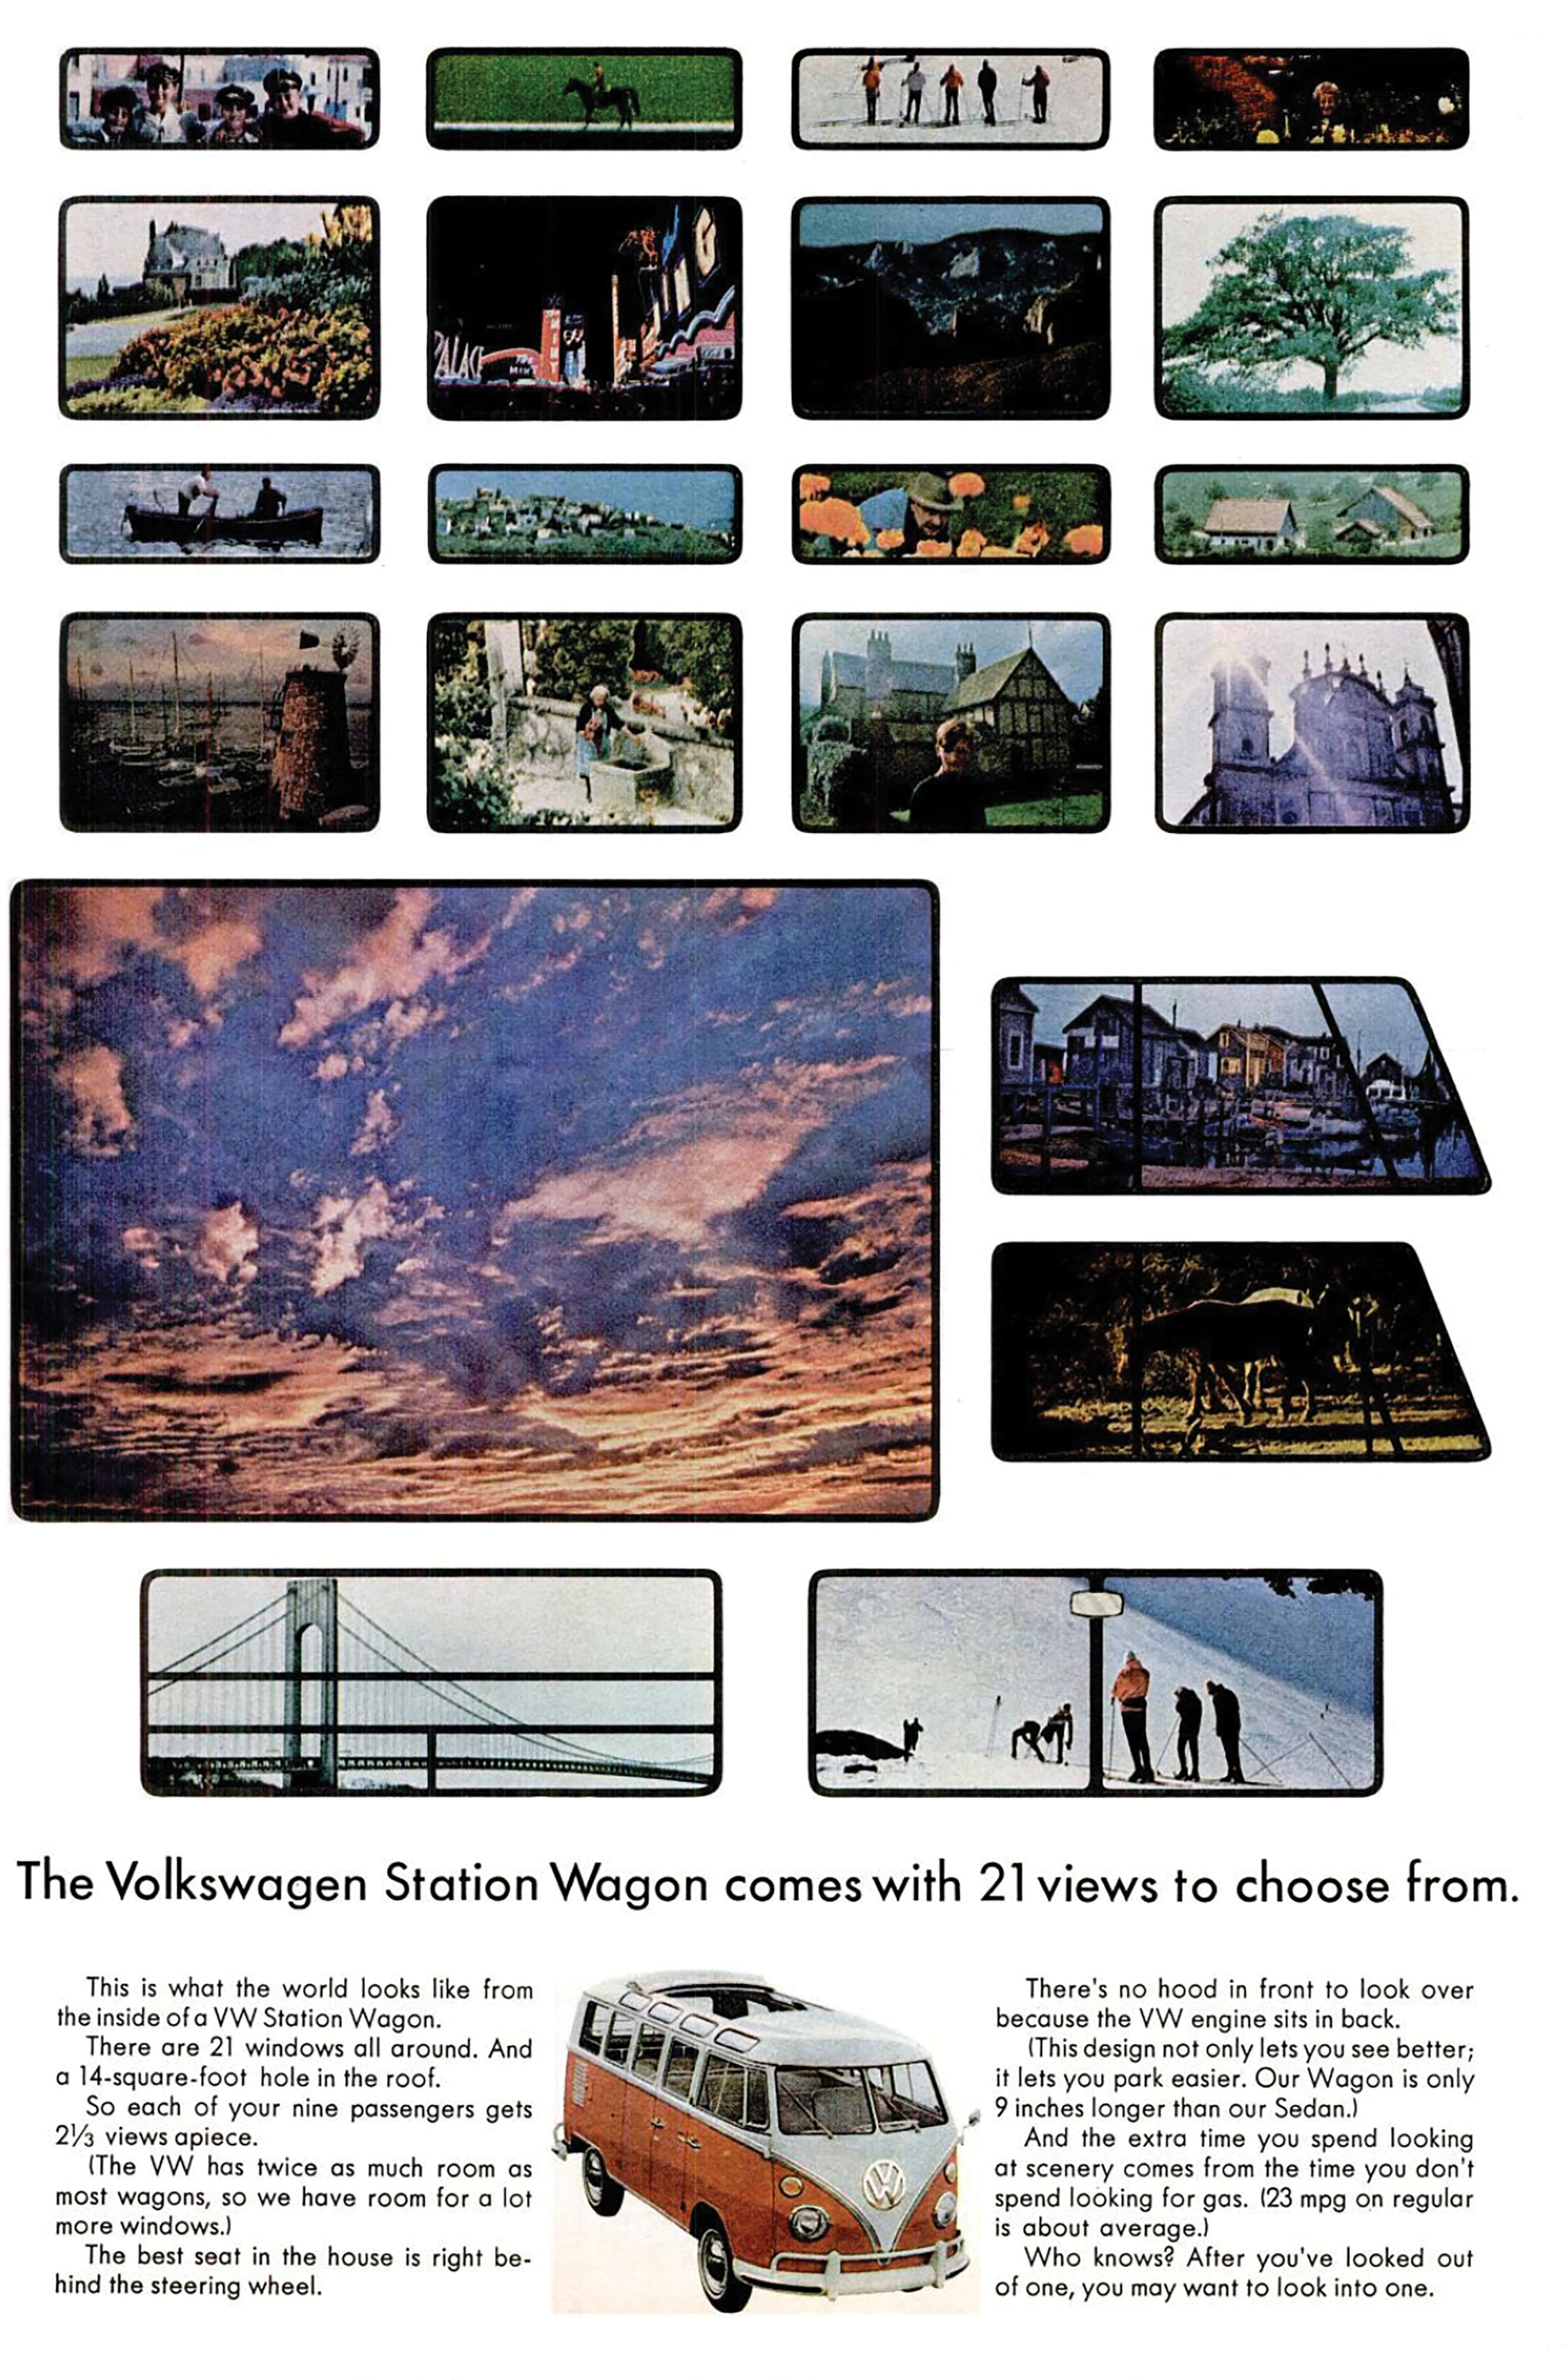 A vintage VW bus ad evokes blue skies, hippie vibes and a pre